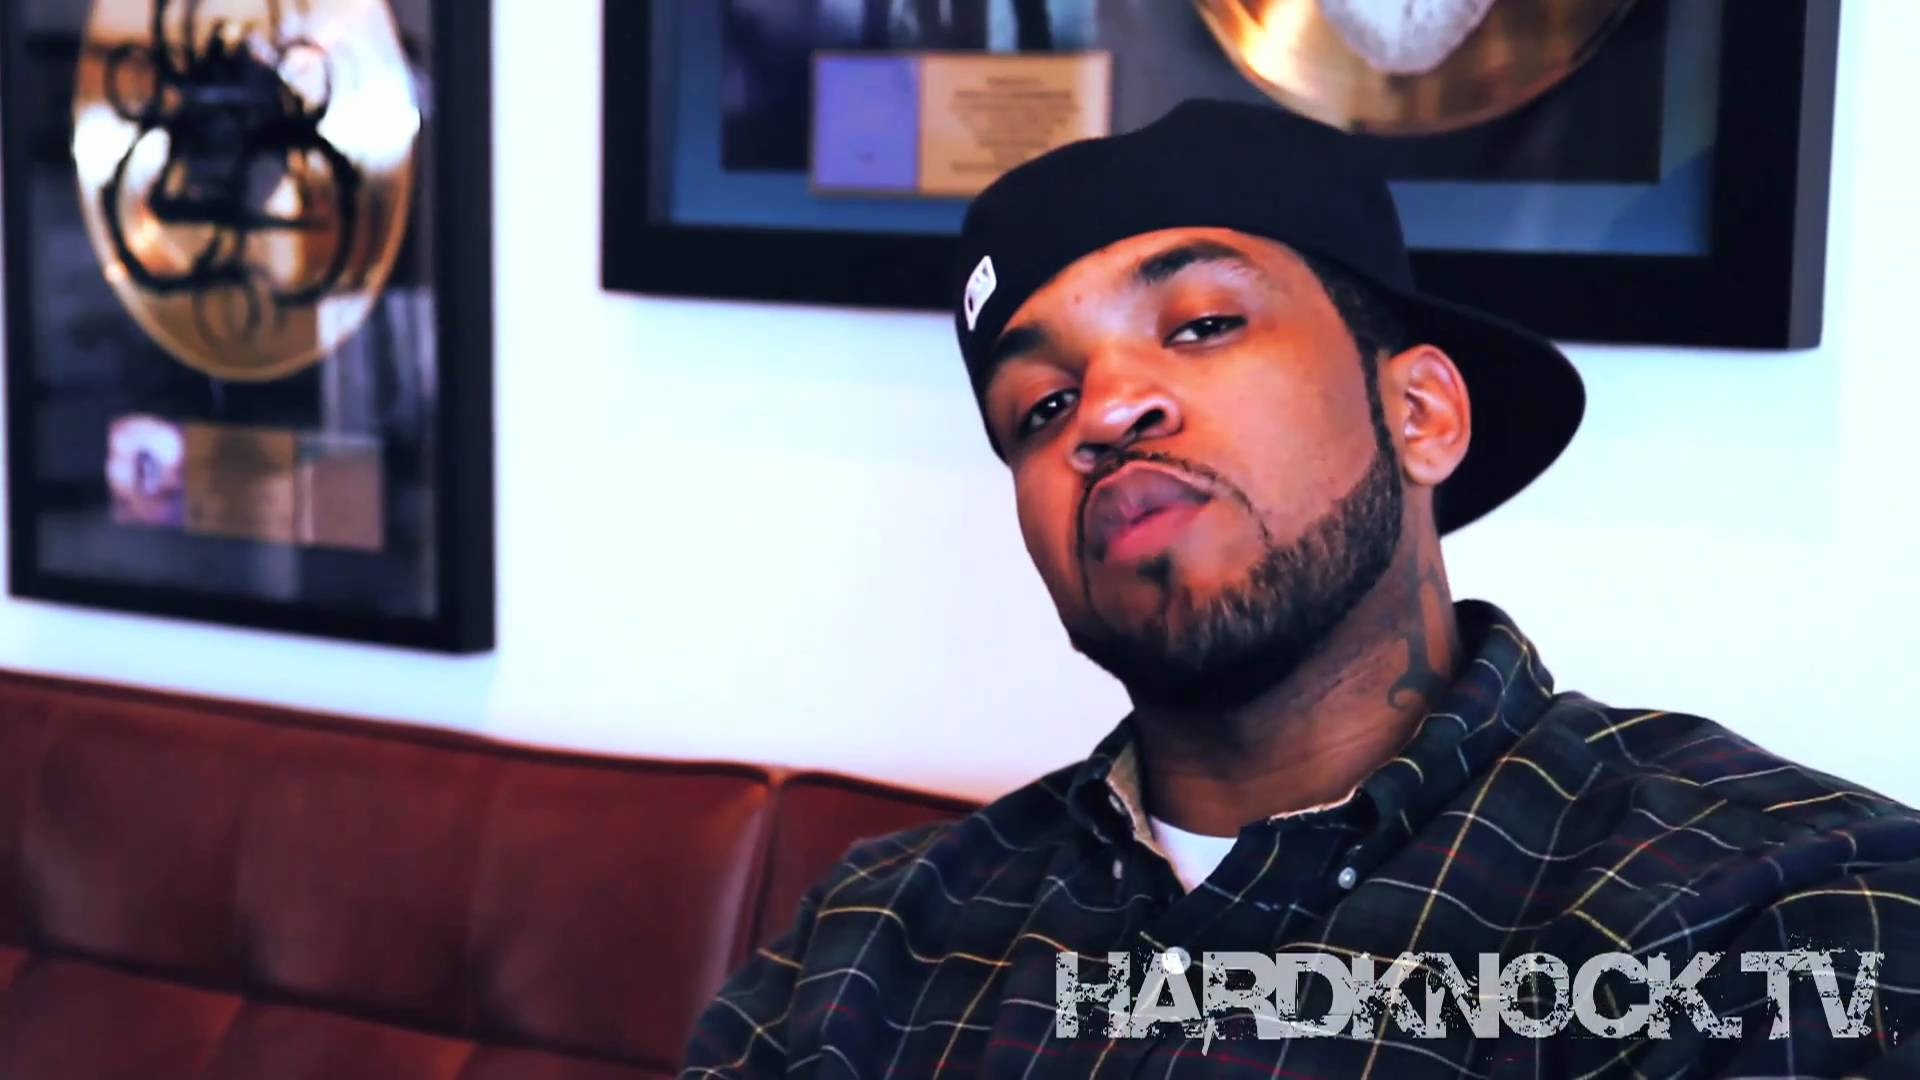 Lloyd Banks talks Chelsea Handler 50 Cent, Soulja Boy XXL Cover, New Album interview by Nick Huff Barili